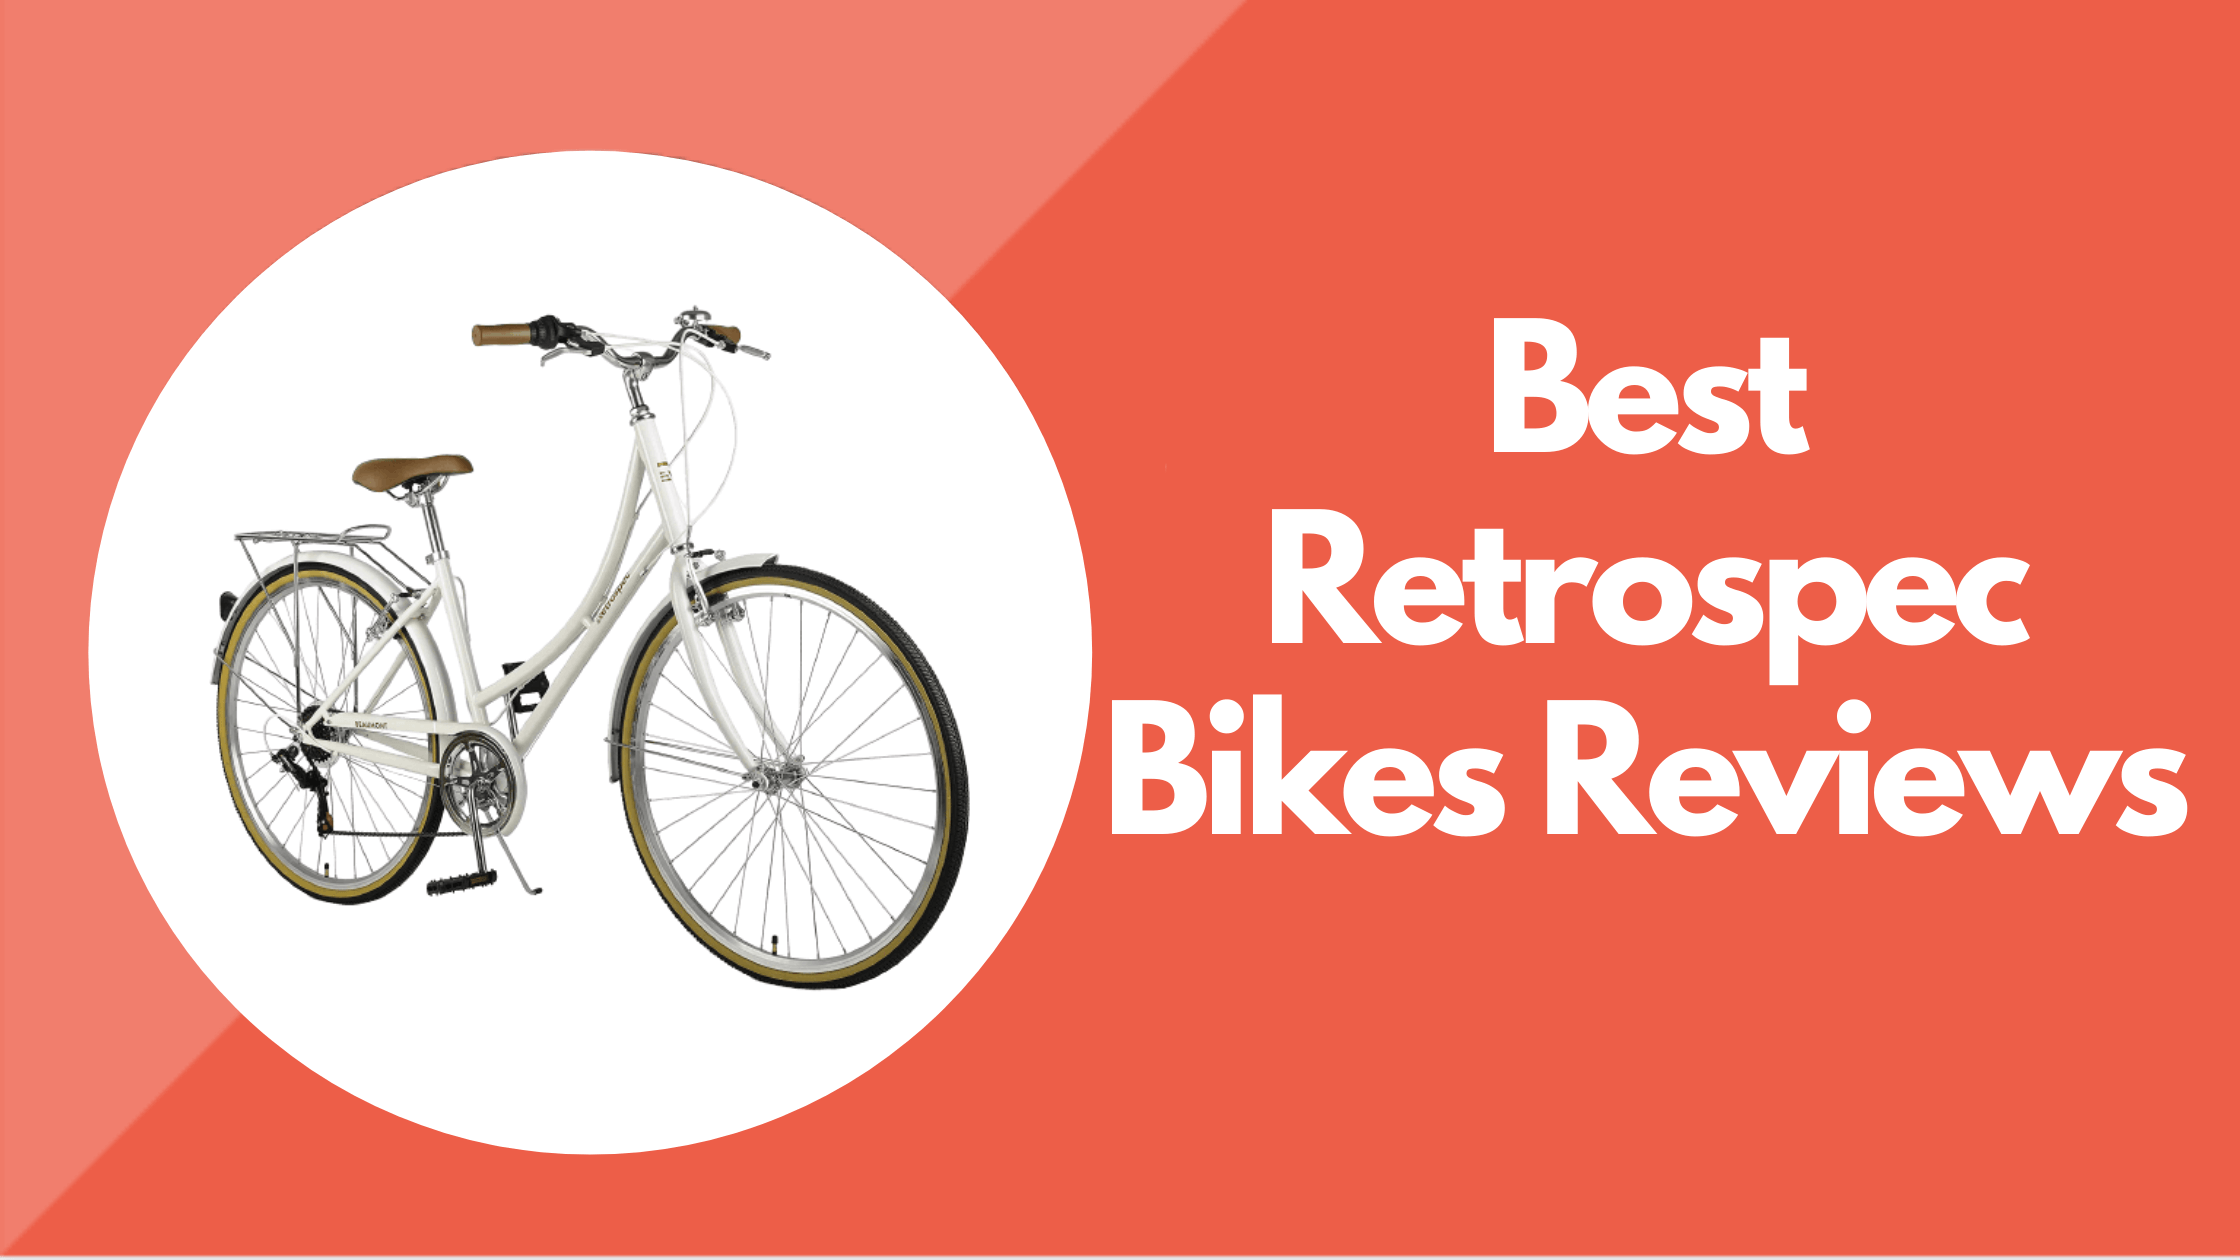 Retrospec Bikes Reviews